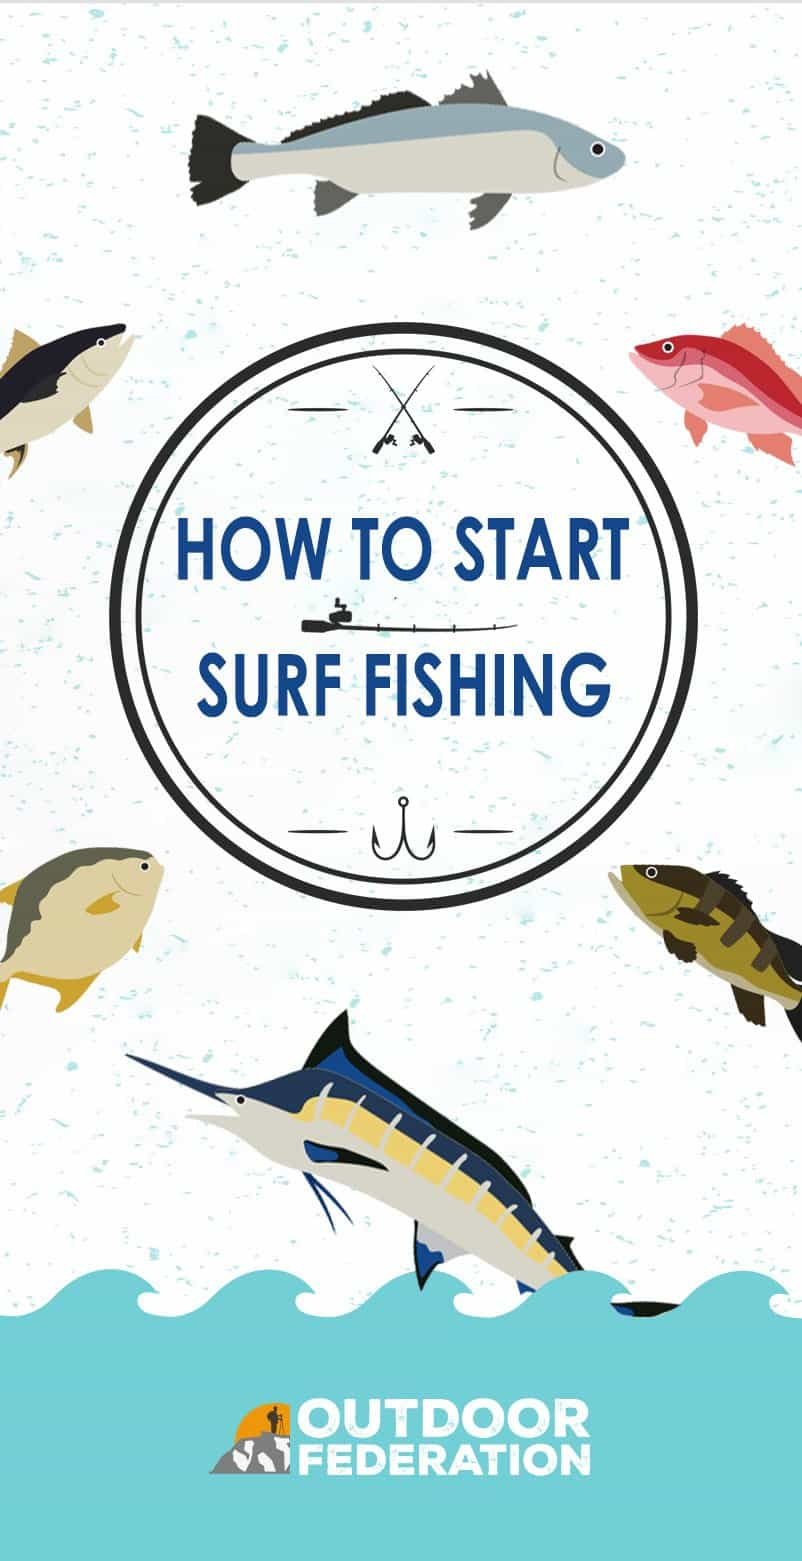 Want to know how to start surf fishing or wish to learn more about surf fishing? surf fishing | surf fishing rigs | surf fishing gear | surf fishing hacks | surf fishing reels | Delaware Surf Fishing | Reel Surf Fishing | Shark Spit Surf Fishing | Surf fishing | surf fishing | SURF FISHING |